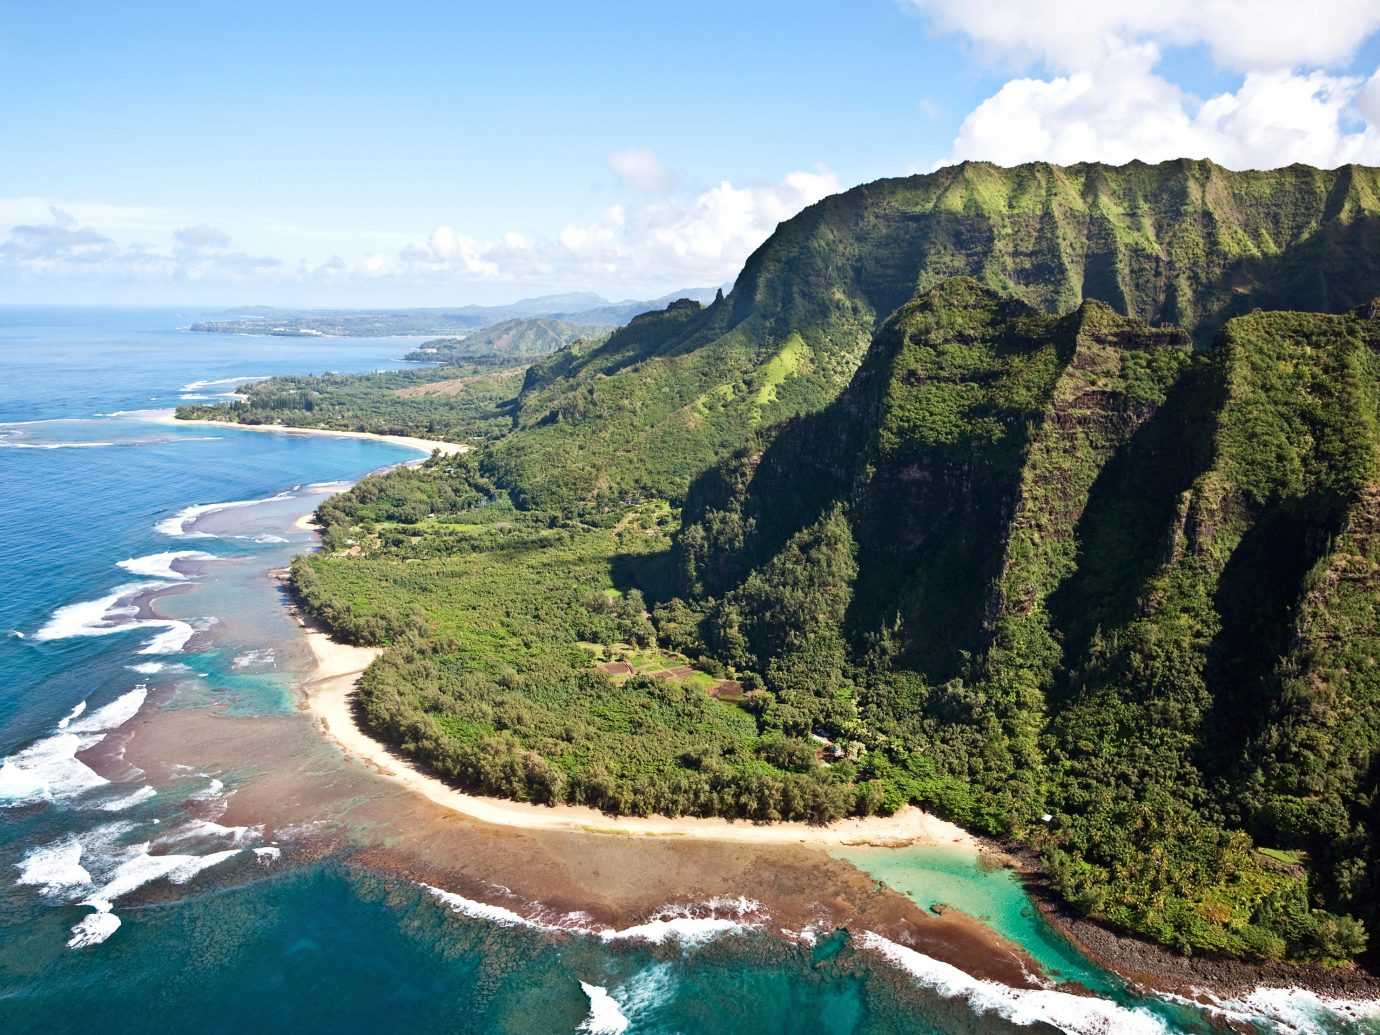 Beachfront Ocean Trip Ideas Tropical mountain sky Nature water outdoor Coast geographical feature landform cliff body of water Sea vacation terrain bay cape landscape fjord cove aerial photography hillside